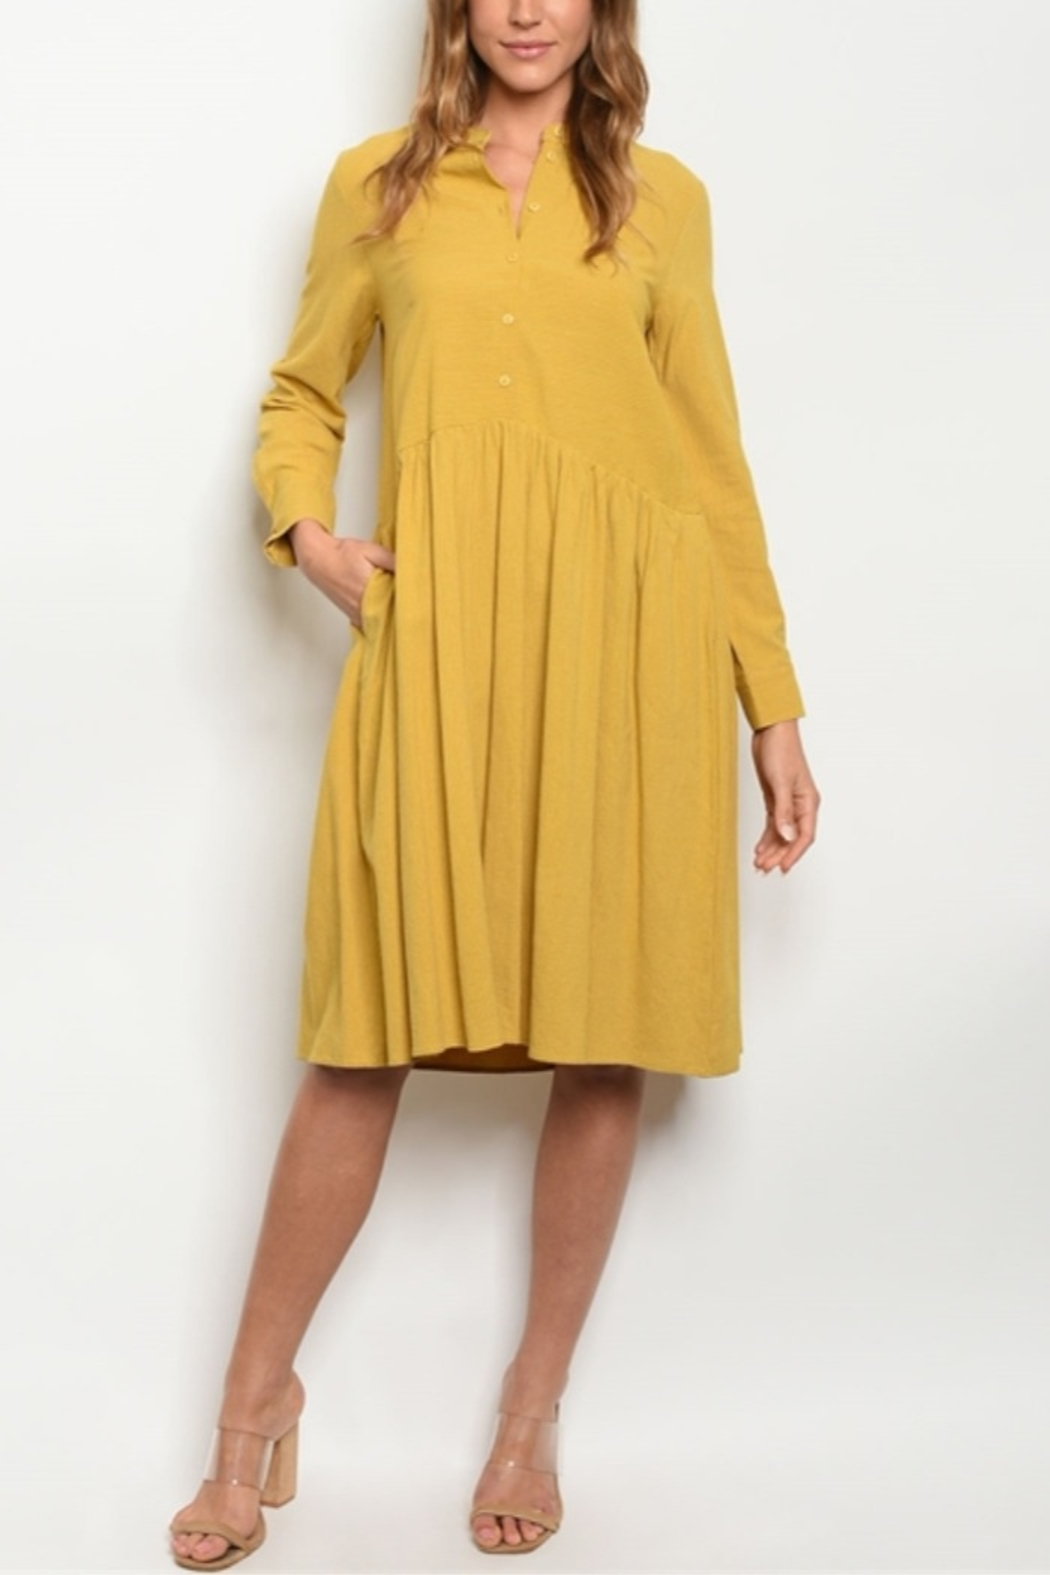 Lyn -Maree's Cotton Mustard Dress - Front Cropped Image